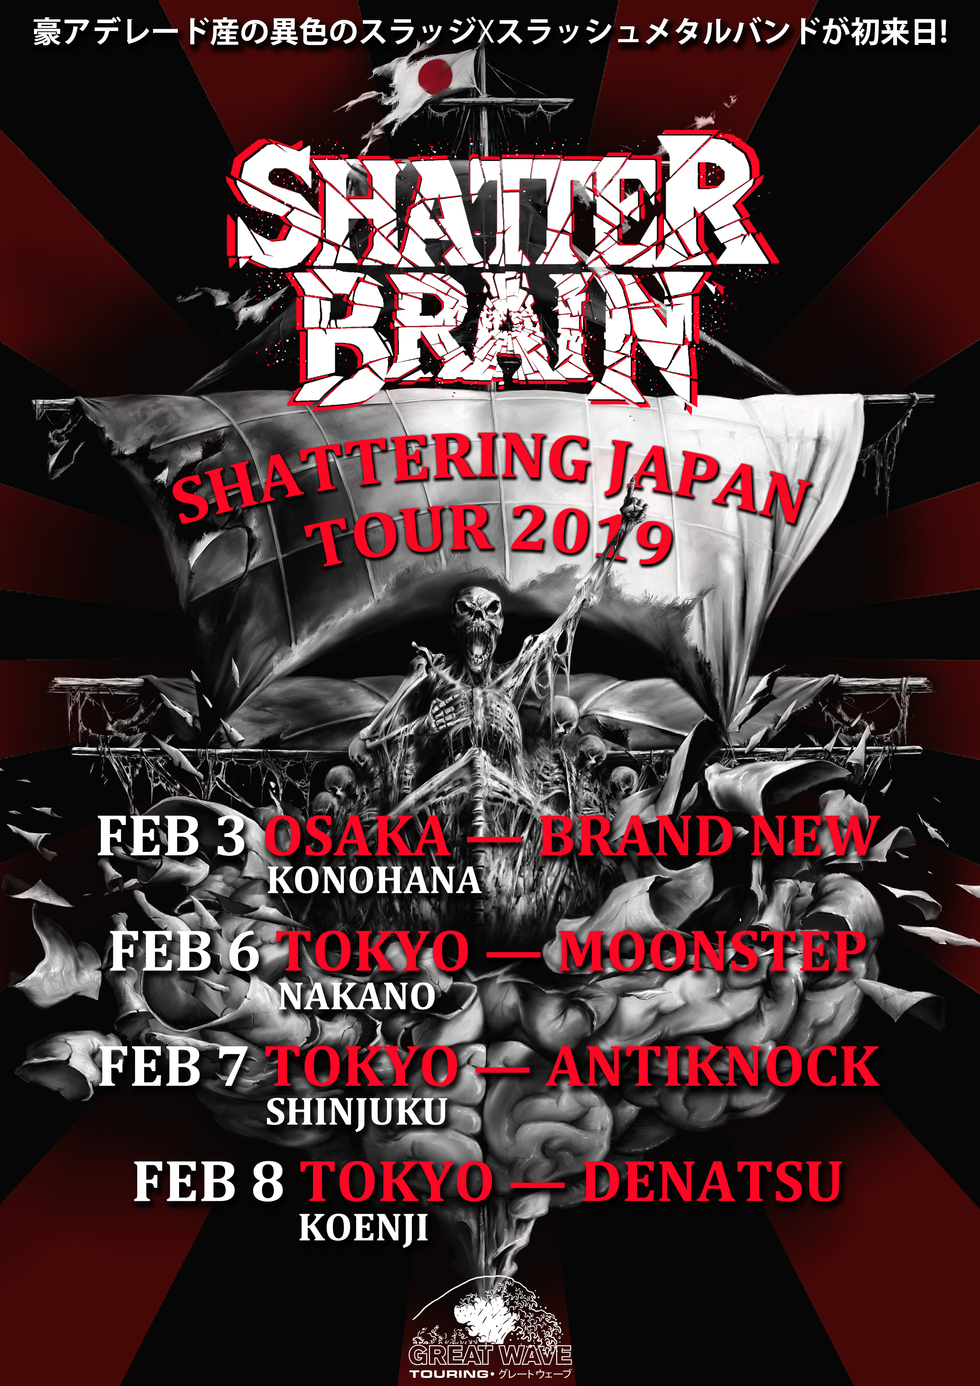 SHATTER BRAIN ANNOUNCE JAPAN TOUR